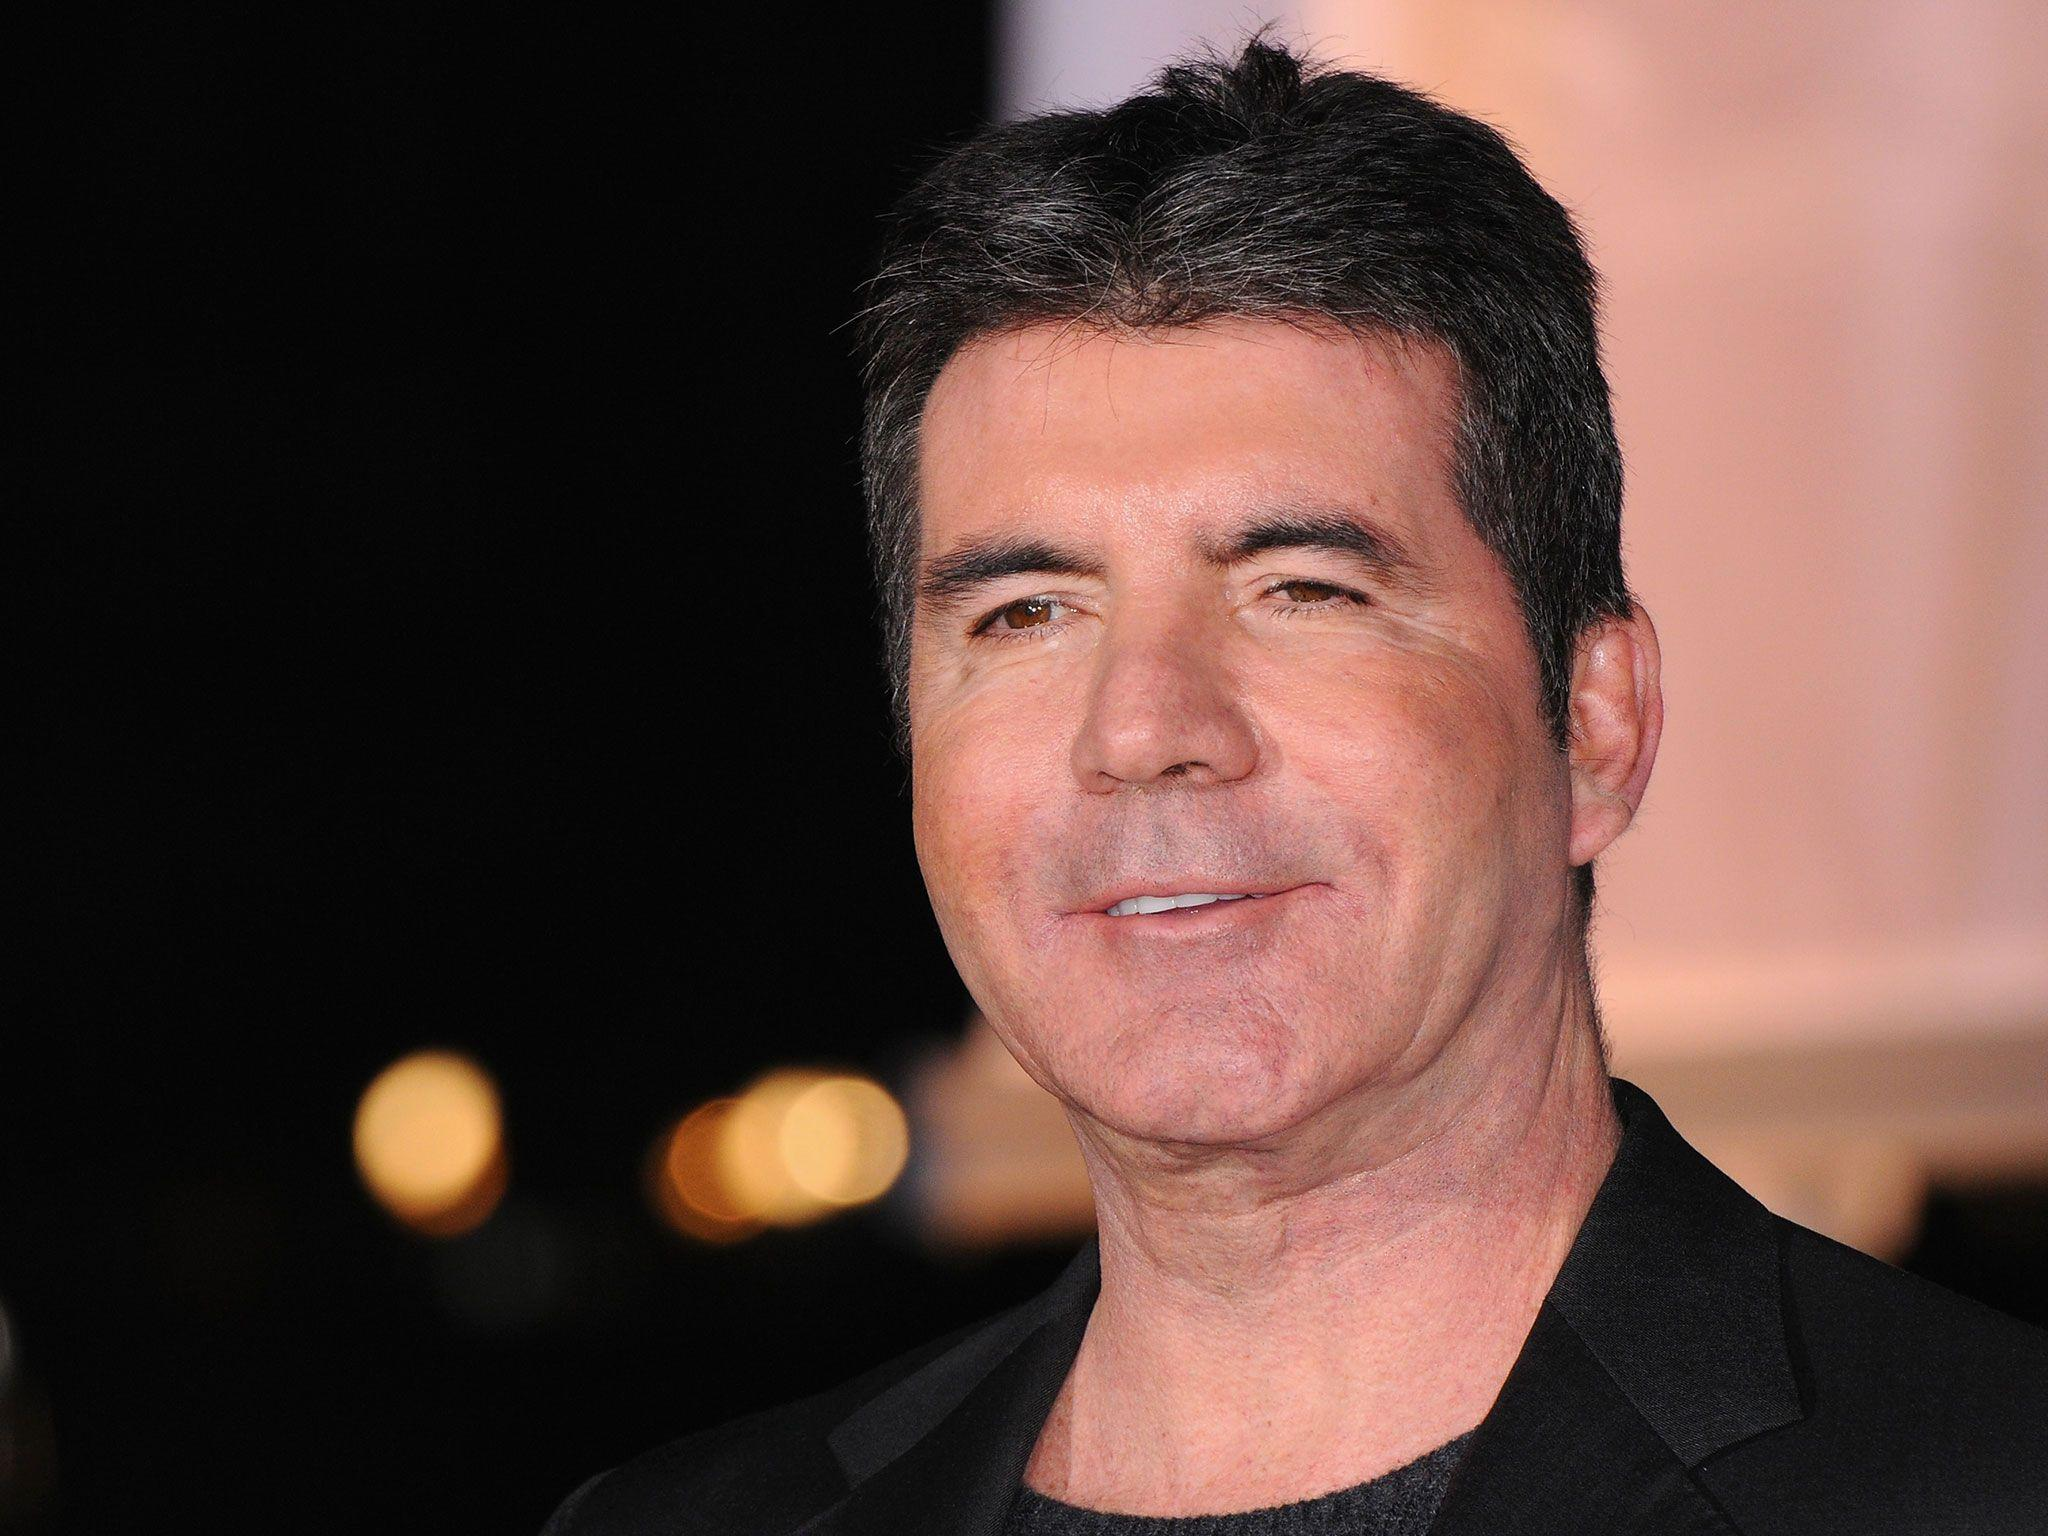 Simon Cowell confirms 'surreal' dog hypnotism at Britain's Got